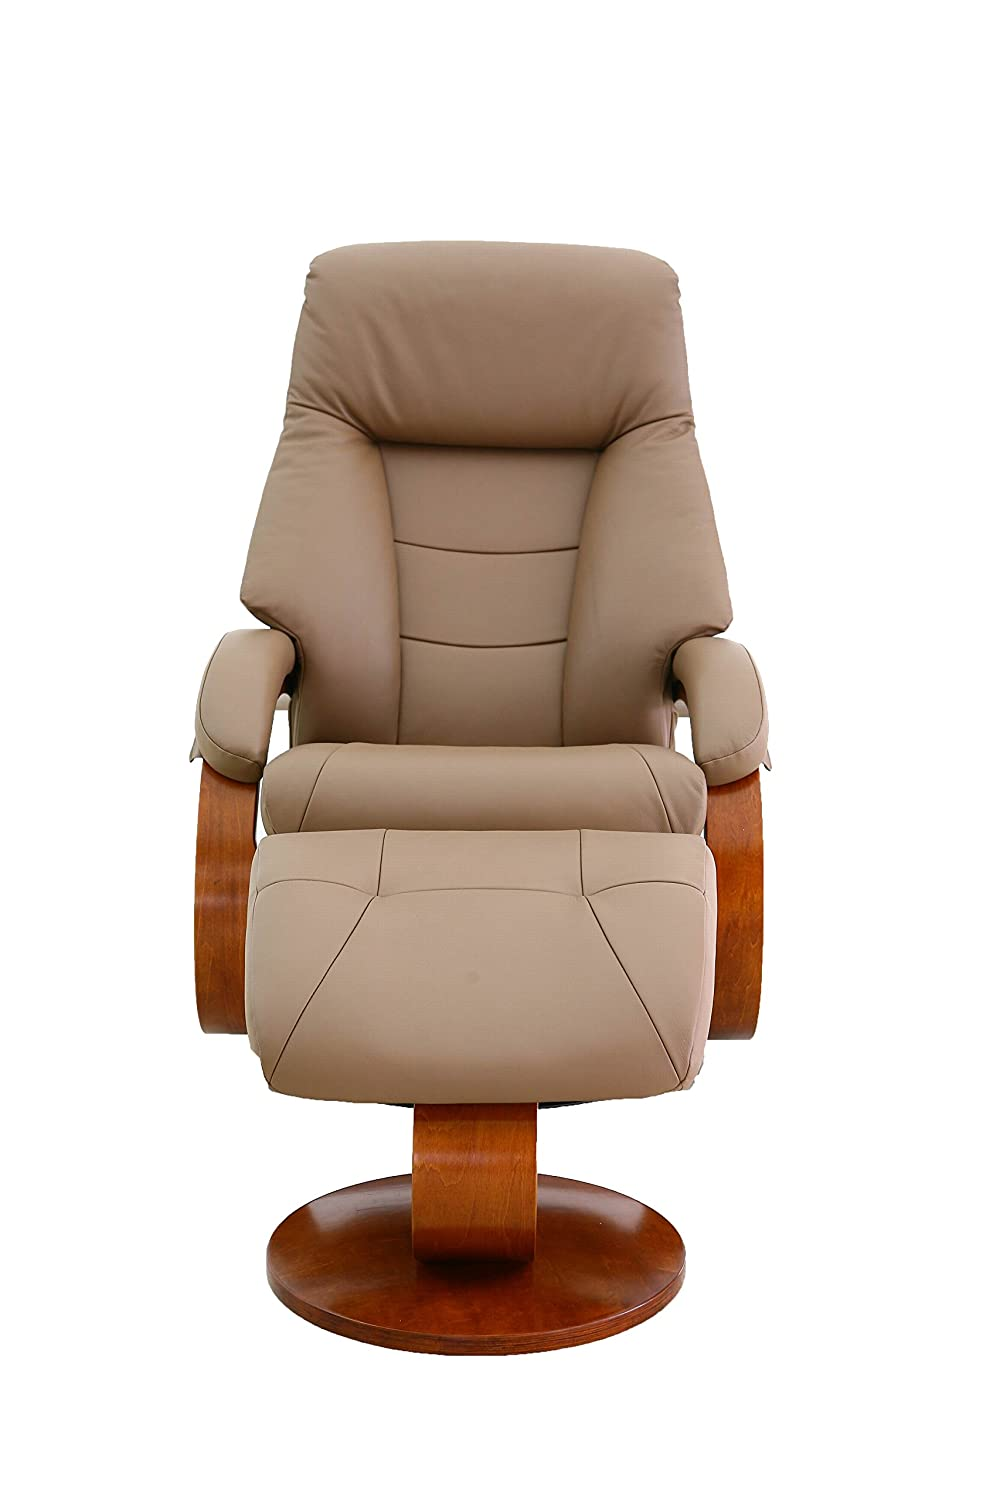 Mandal Recliner with Ottoman